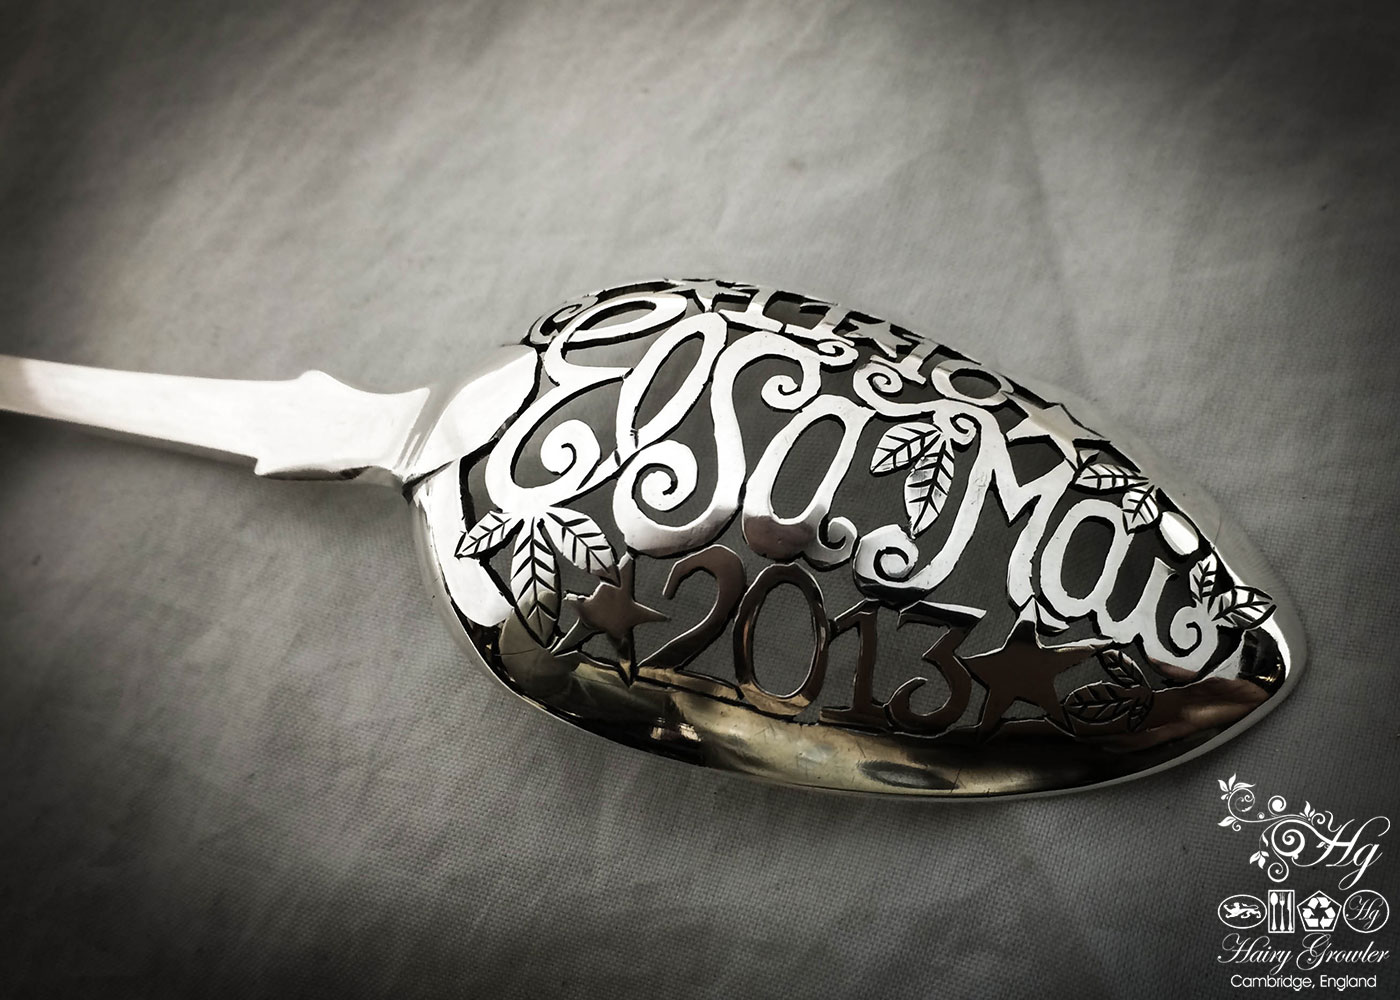 Individually commissioned and upcycled bespoke birth record christening naming ceremony spoon